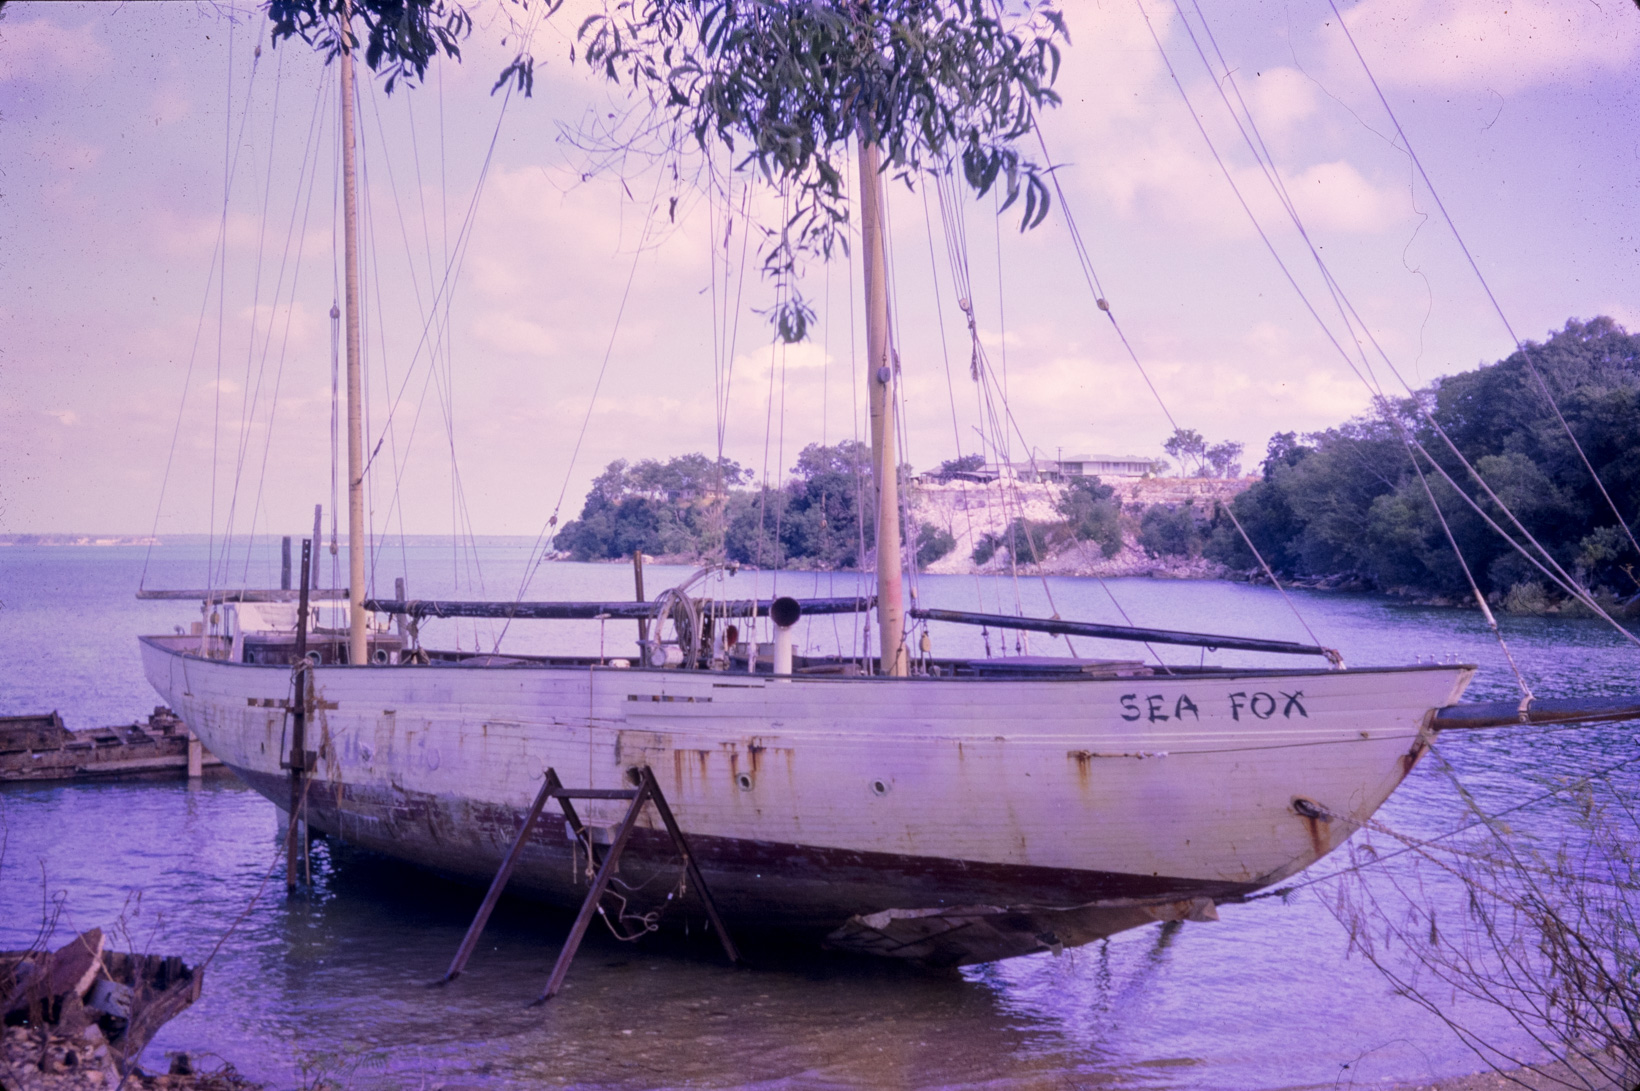 A two-masted yacht in a state of disrepair is beached at Doctors Gully near Darwin.